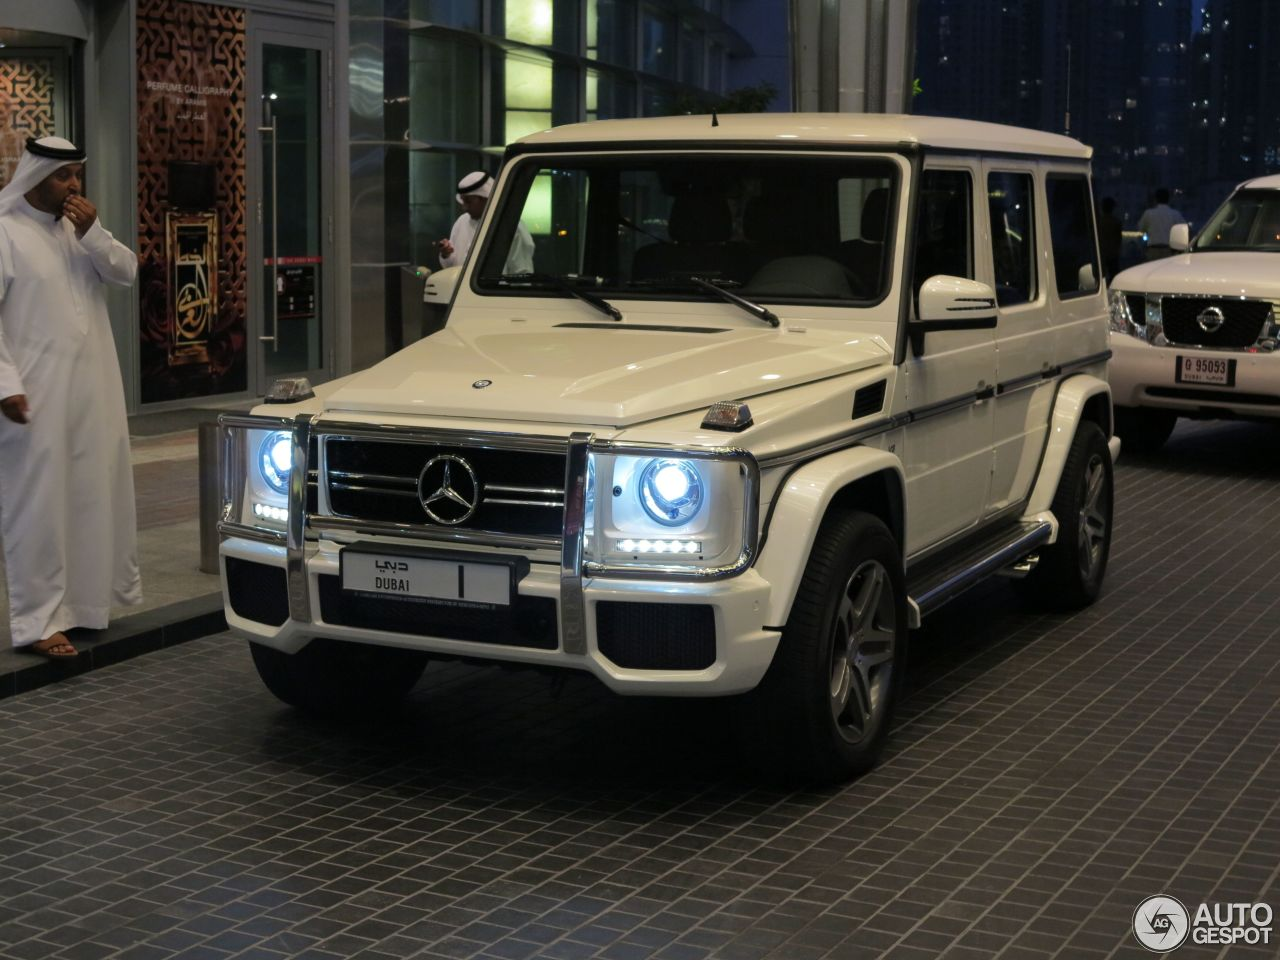 mercedes benz g 63 amg 2012 20 november 2012 autogespot. Black Bedroom Furniture Sets. Home Design Ideas